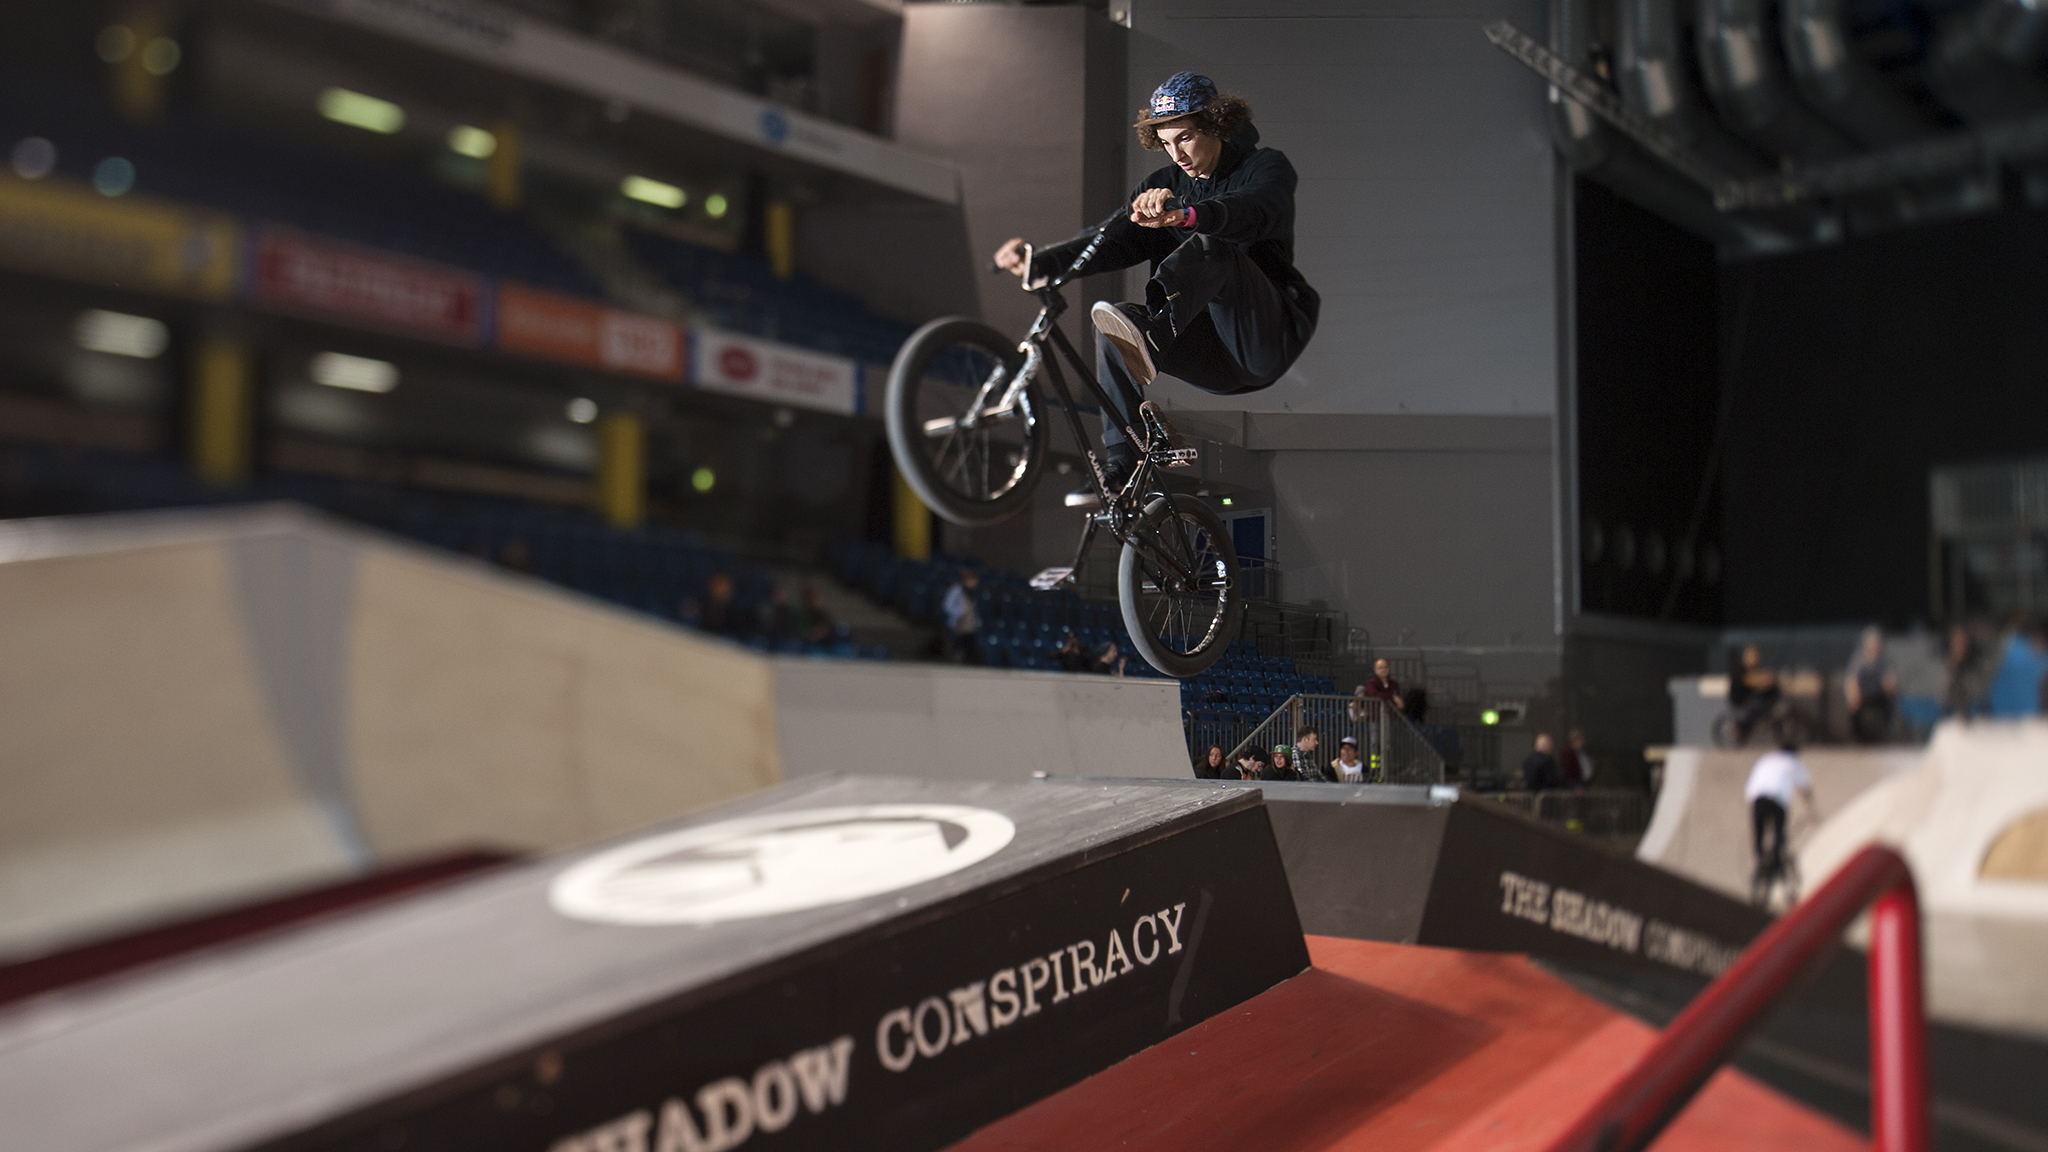 X Games BMX Street competitor Simone Barraco traveled from Italy for Simple Session, and threw nonstop crank flips throughout the weekend. Barraco finished 14th overall in the the BMX finals.